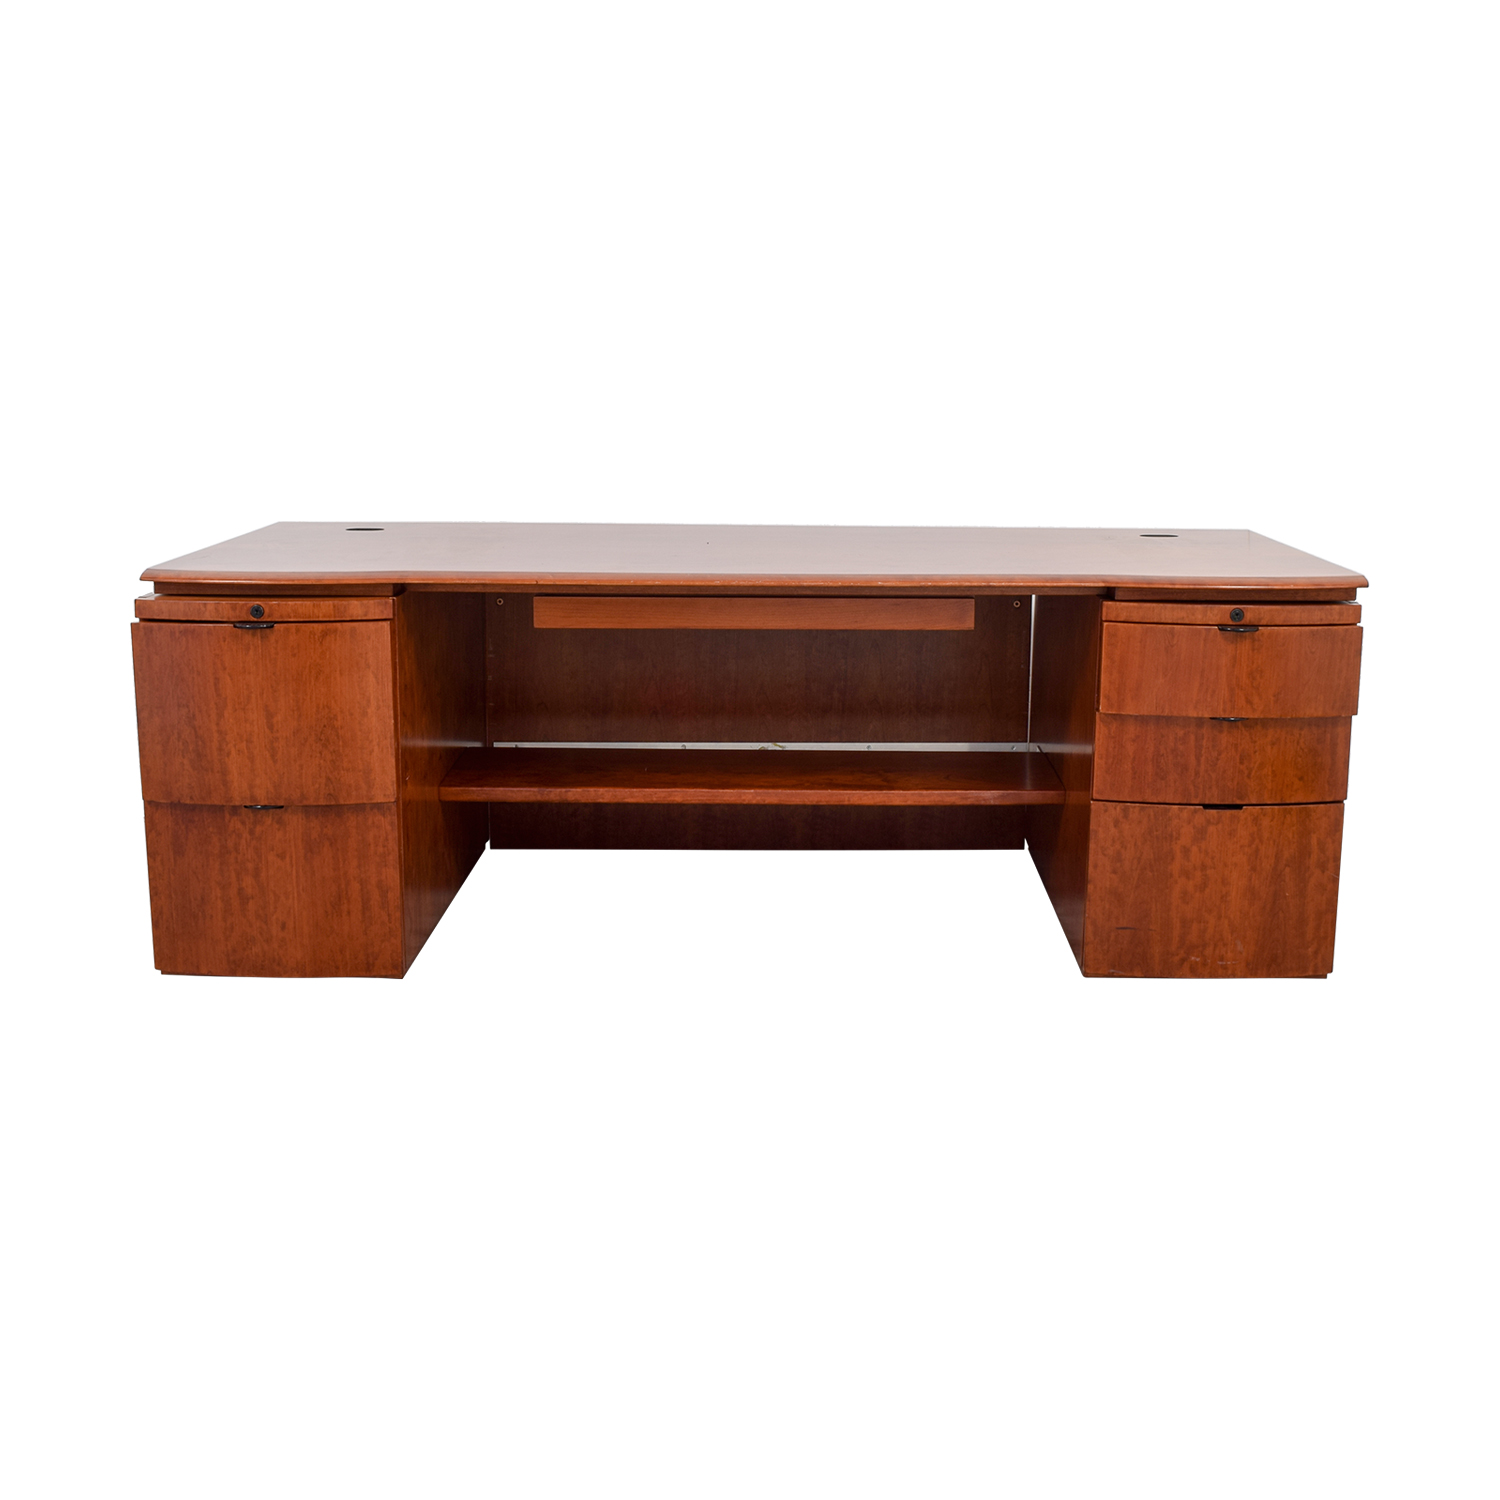 Knoll Knoll Executive Desk on sale